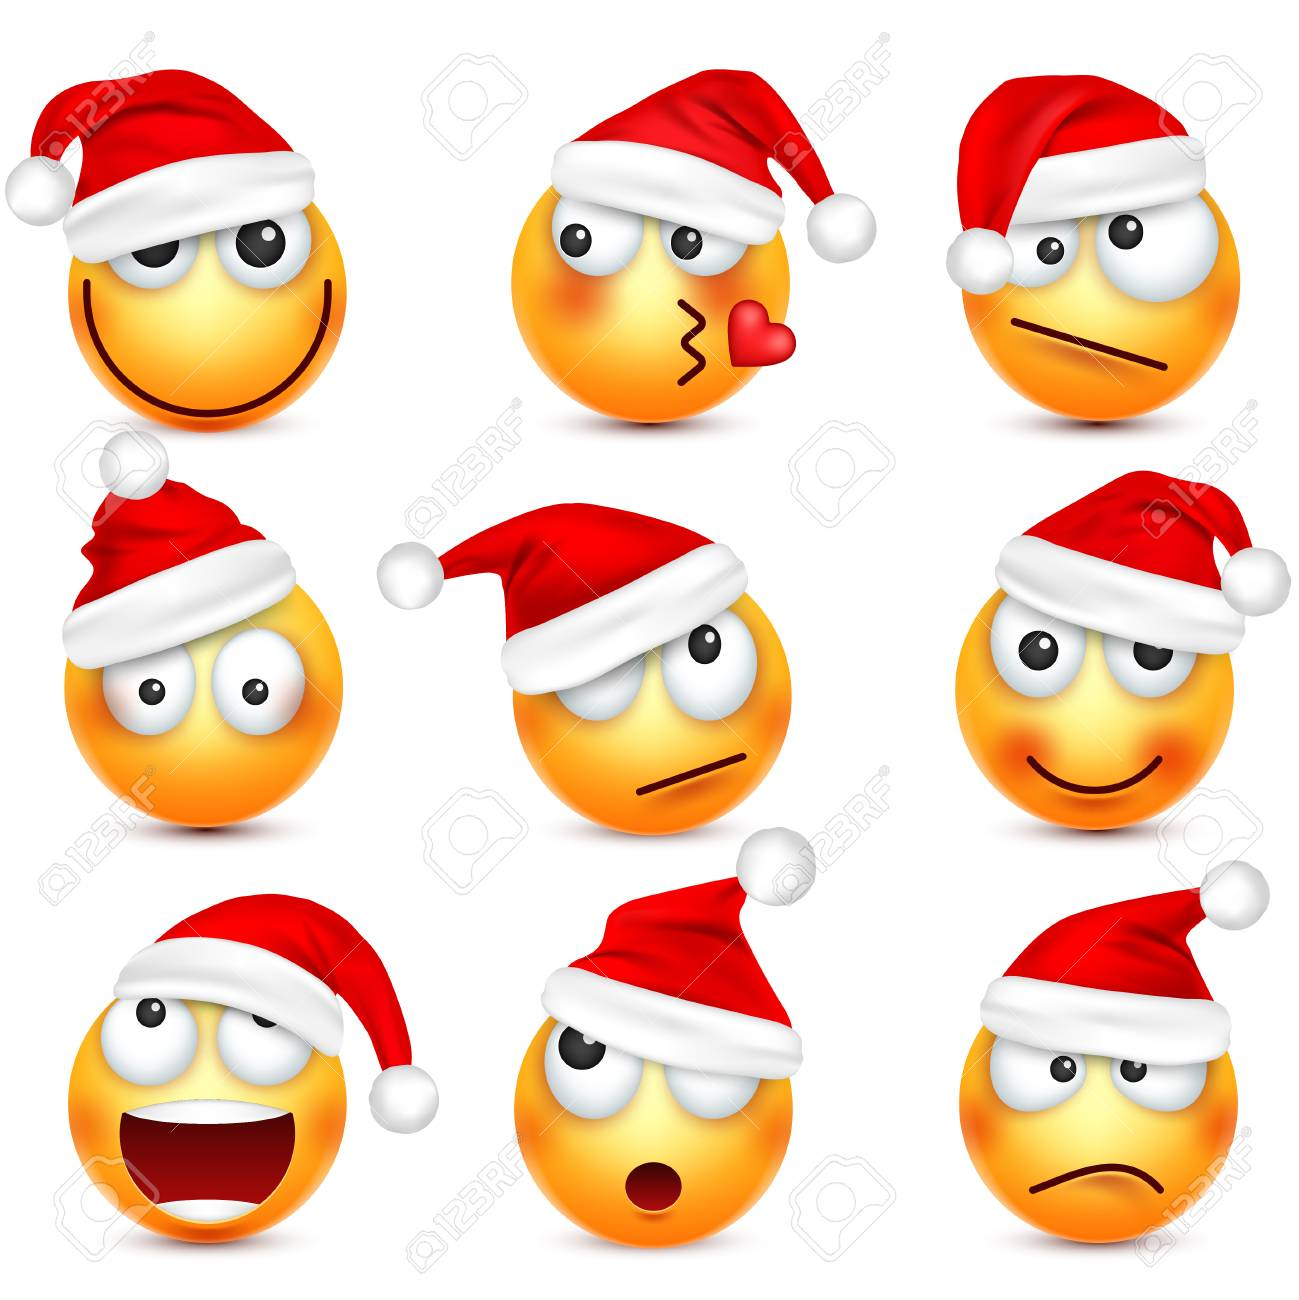 de9376c37f2ce Smiley emoticon set. Yellow face with emotions and Christmas hat. New Year